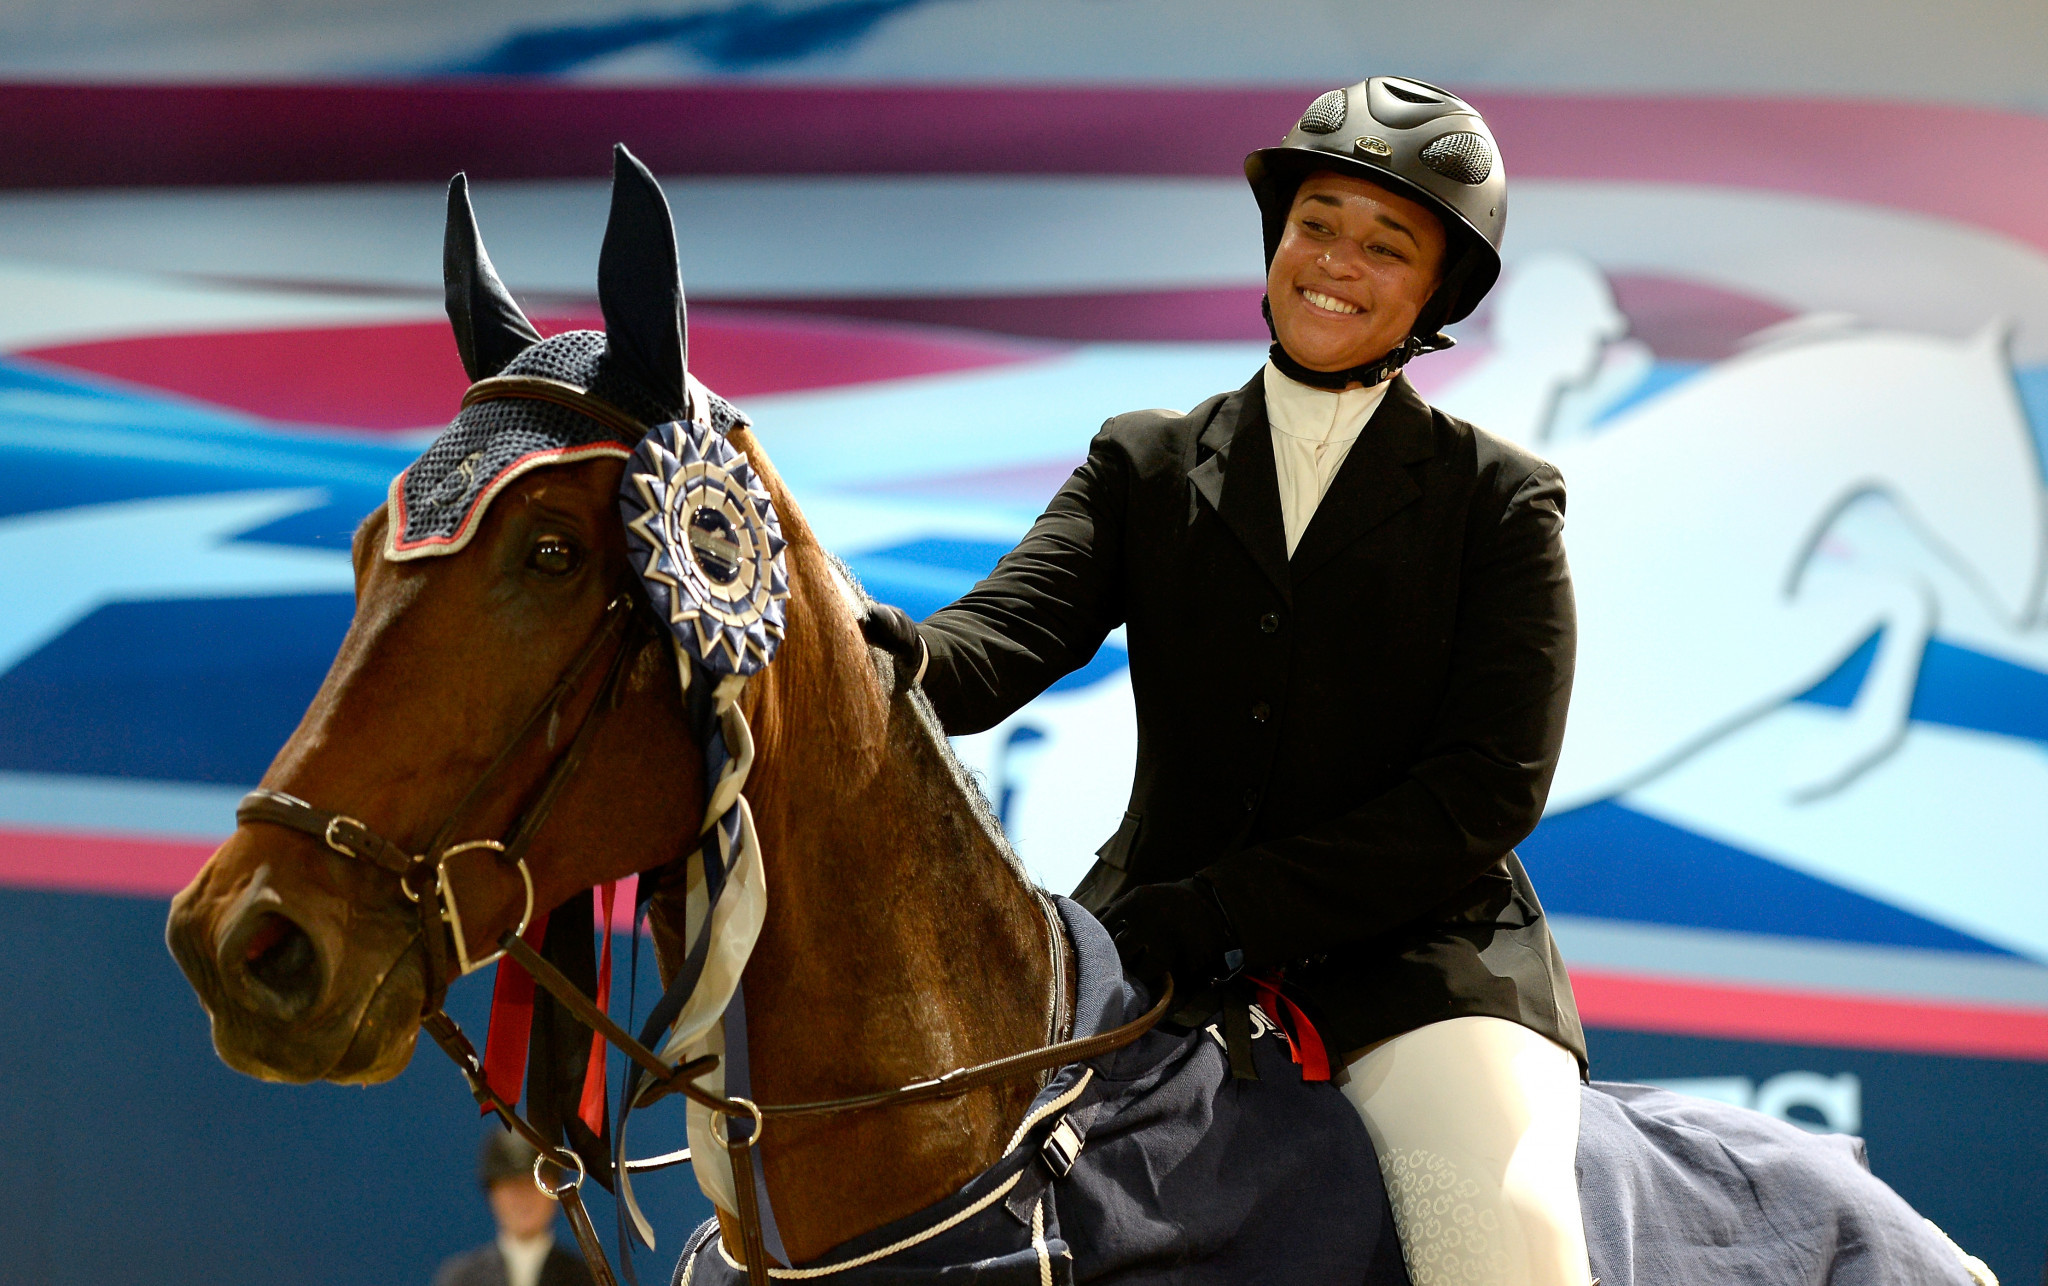 American jumper Johnson has one-year FEI ban reduced to three months following CAS appeal